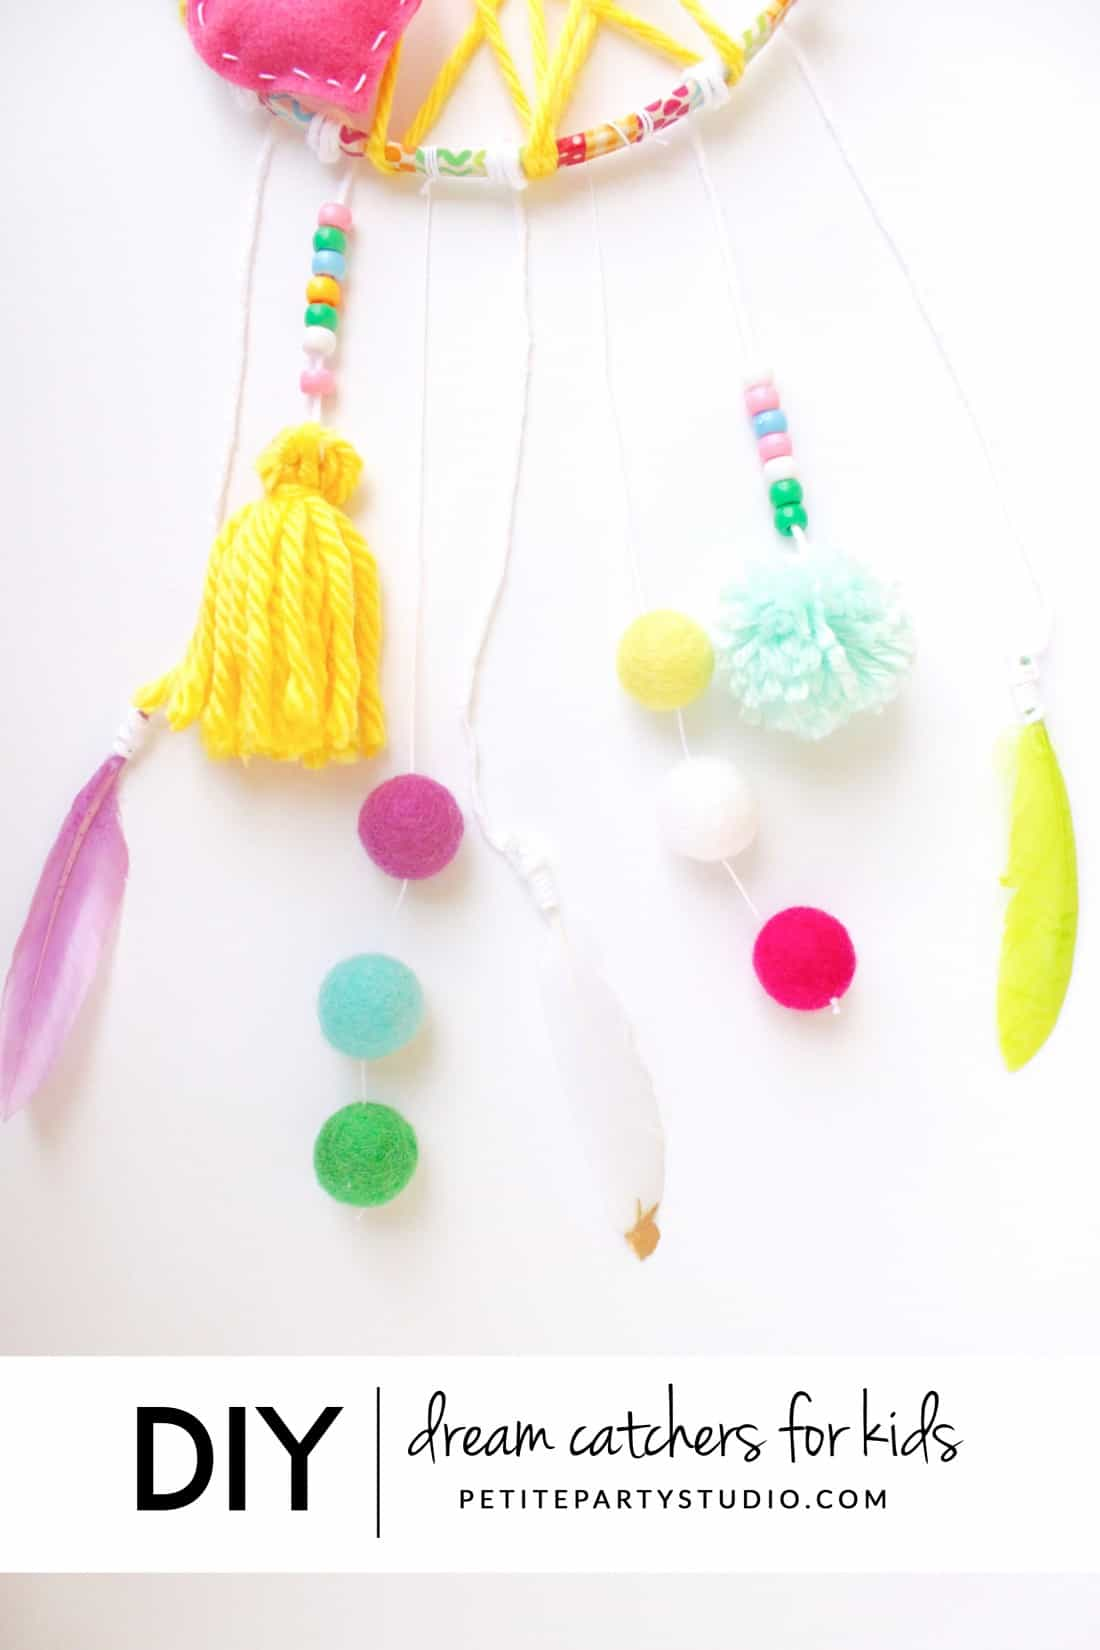 Diy yarn and felt dream catchers